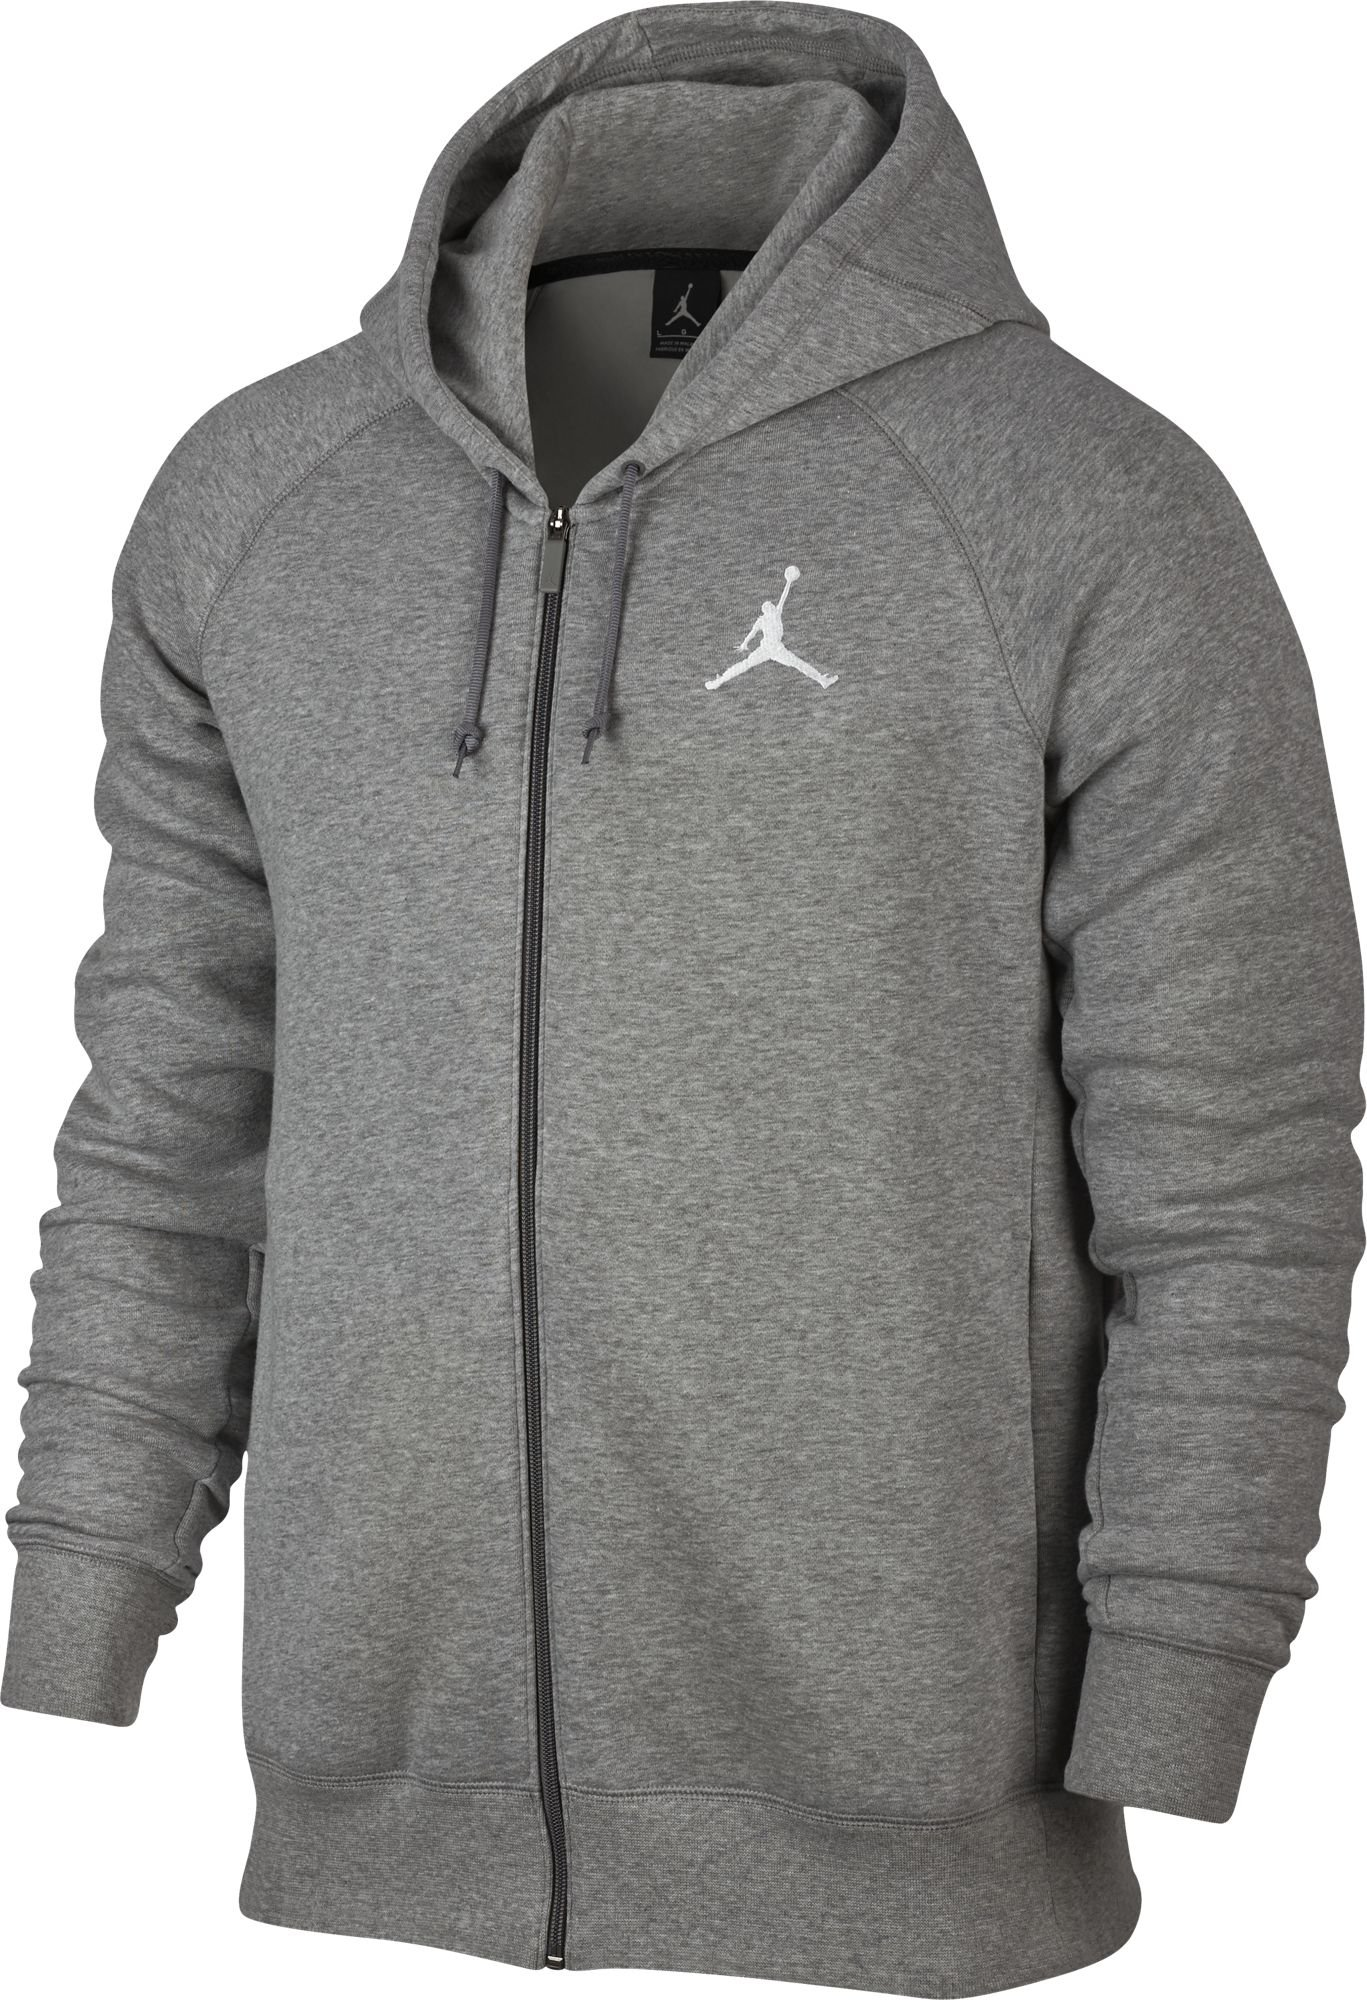 Jordan Flight Basketball Hoodie